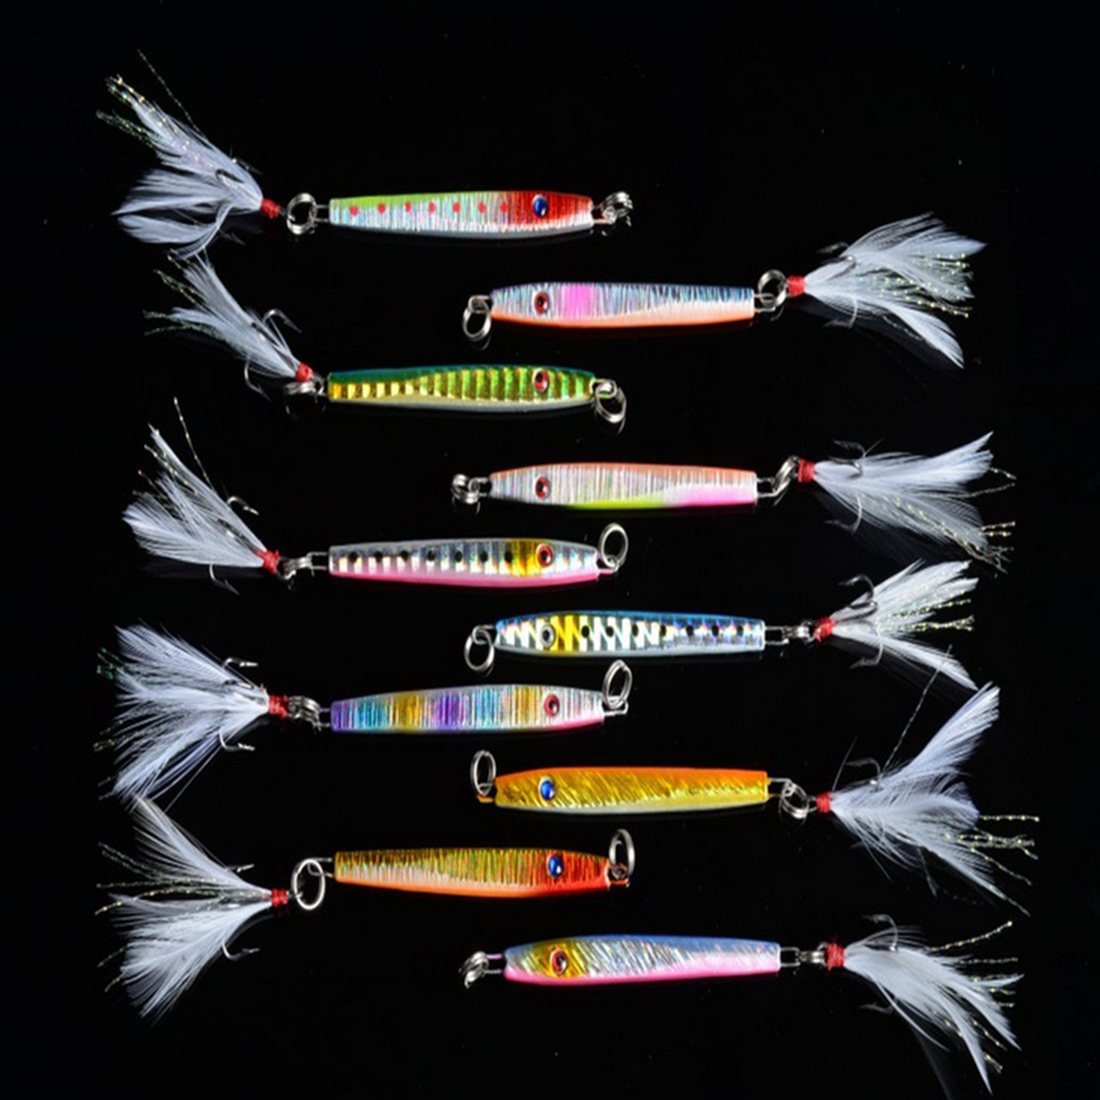 10Pcs Lead Jerbait Fishing Lure Minnow Fish Head Lead Diving Fish Jig Baits 8# Hook 5.7cm/10.9g Pecha Fishing Wobblers